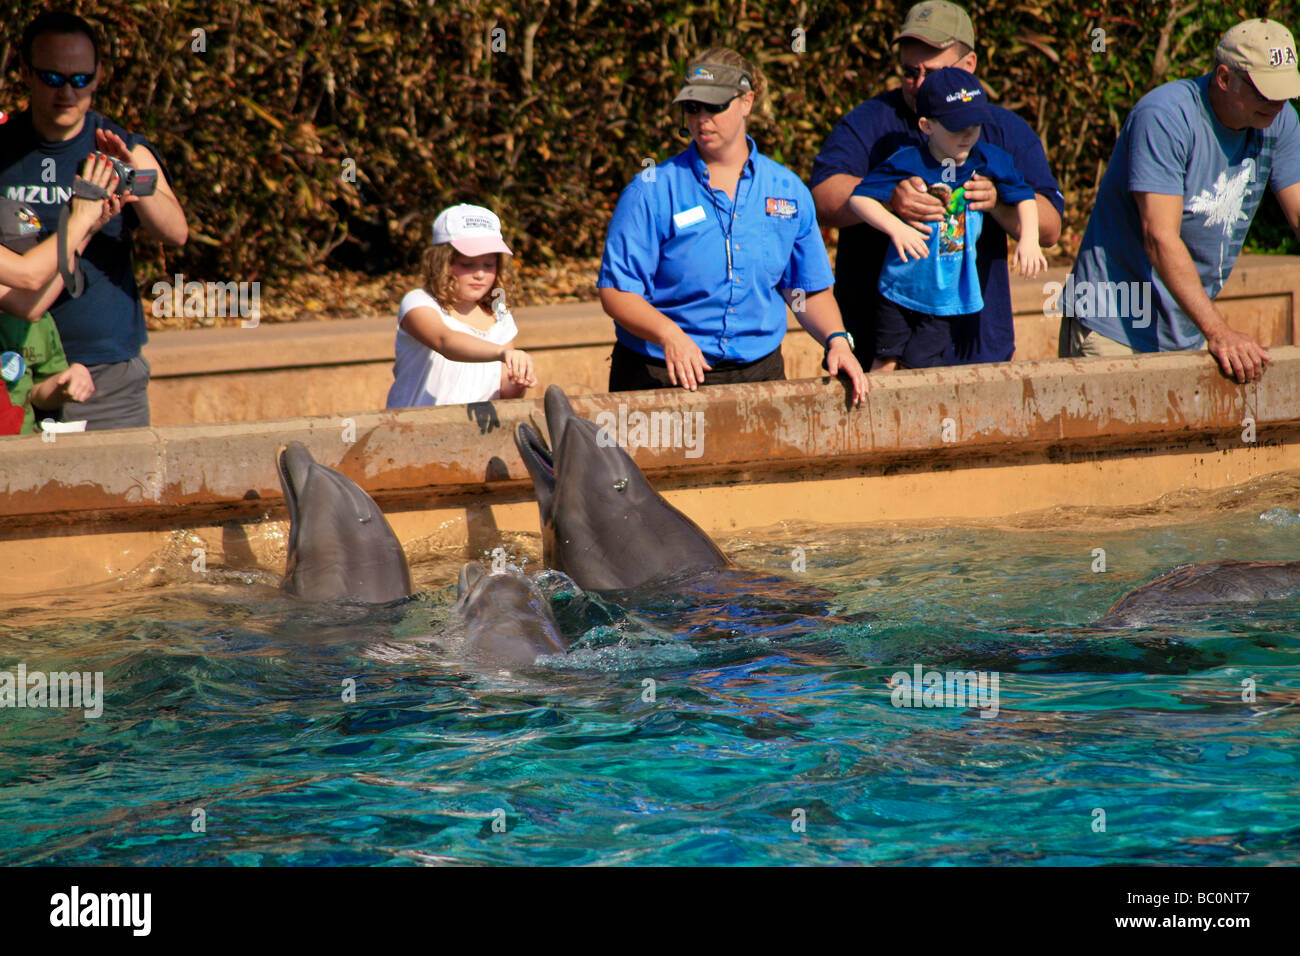 Interaction Of Dolphins And People At Feeding Time In A Outdoor Aquarium In  Florid